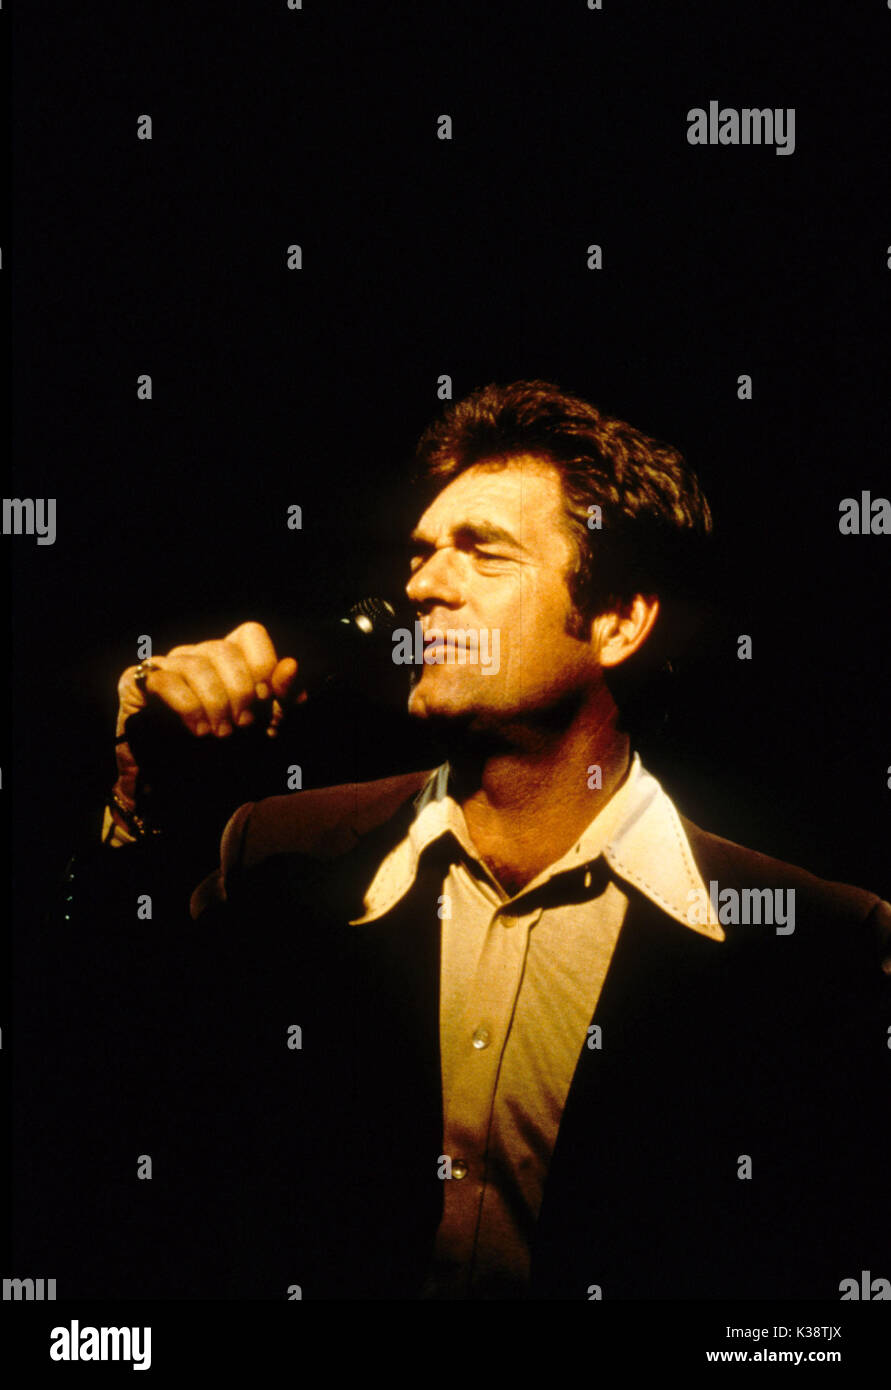 DUETS HUEY LEWIS     Date: 2000 - Stock Image